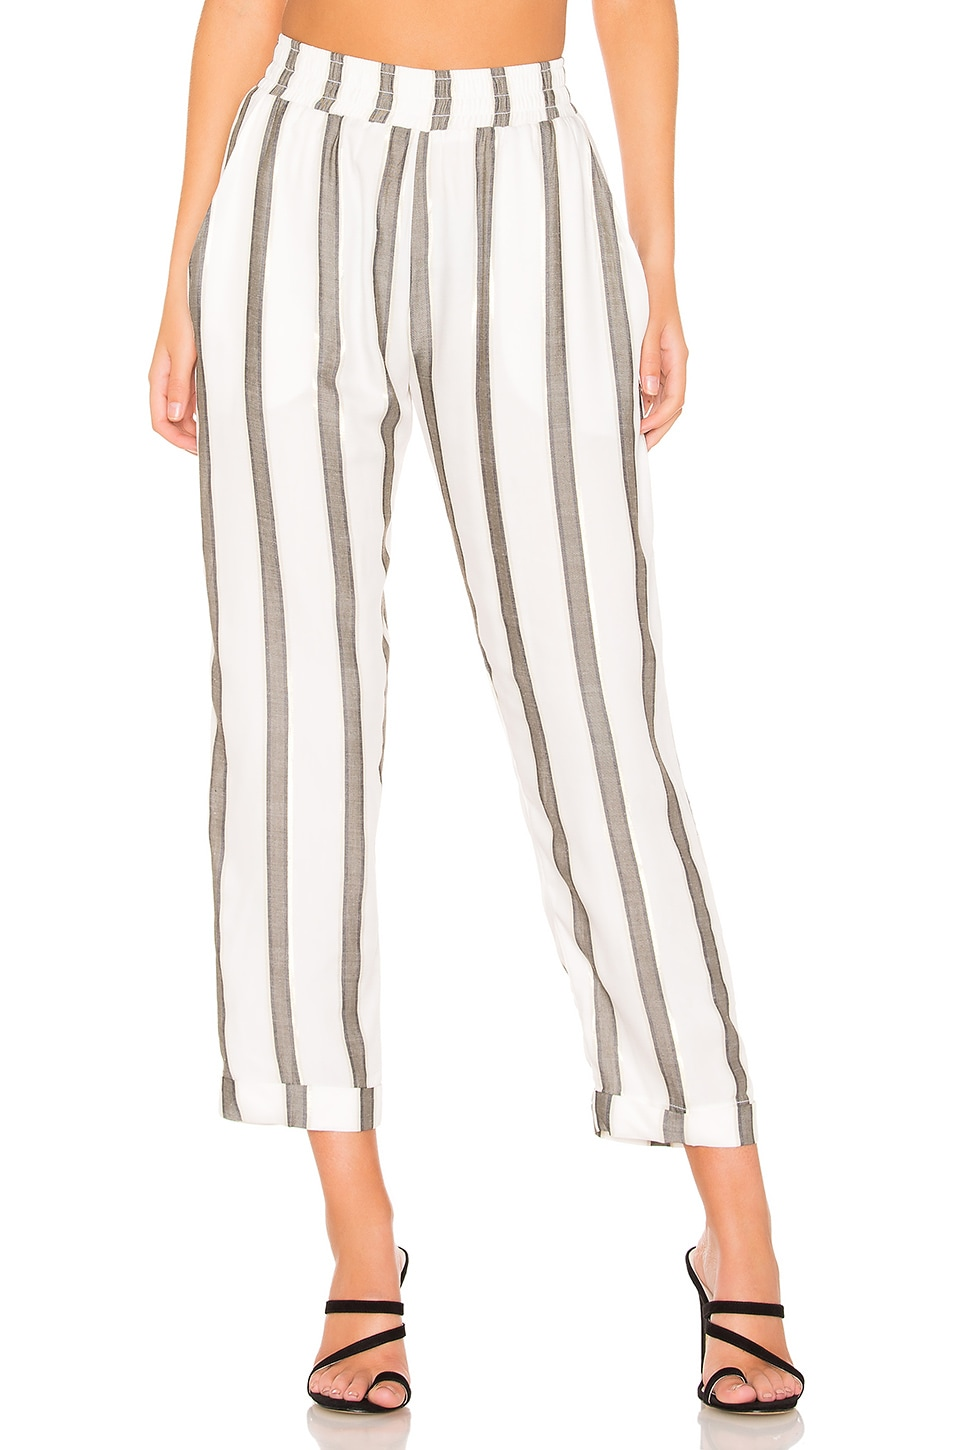 BEACH RIOT Avery Pant in Stripe